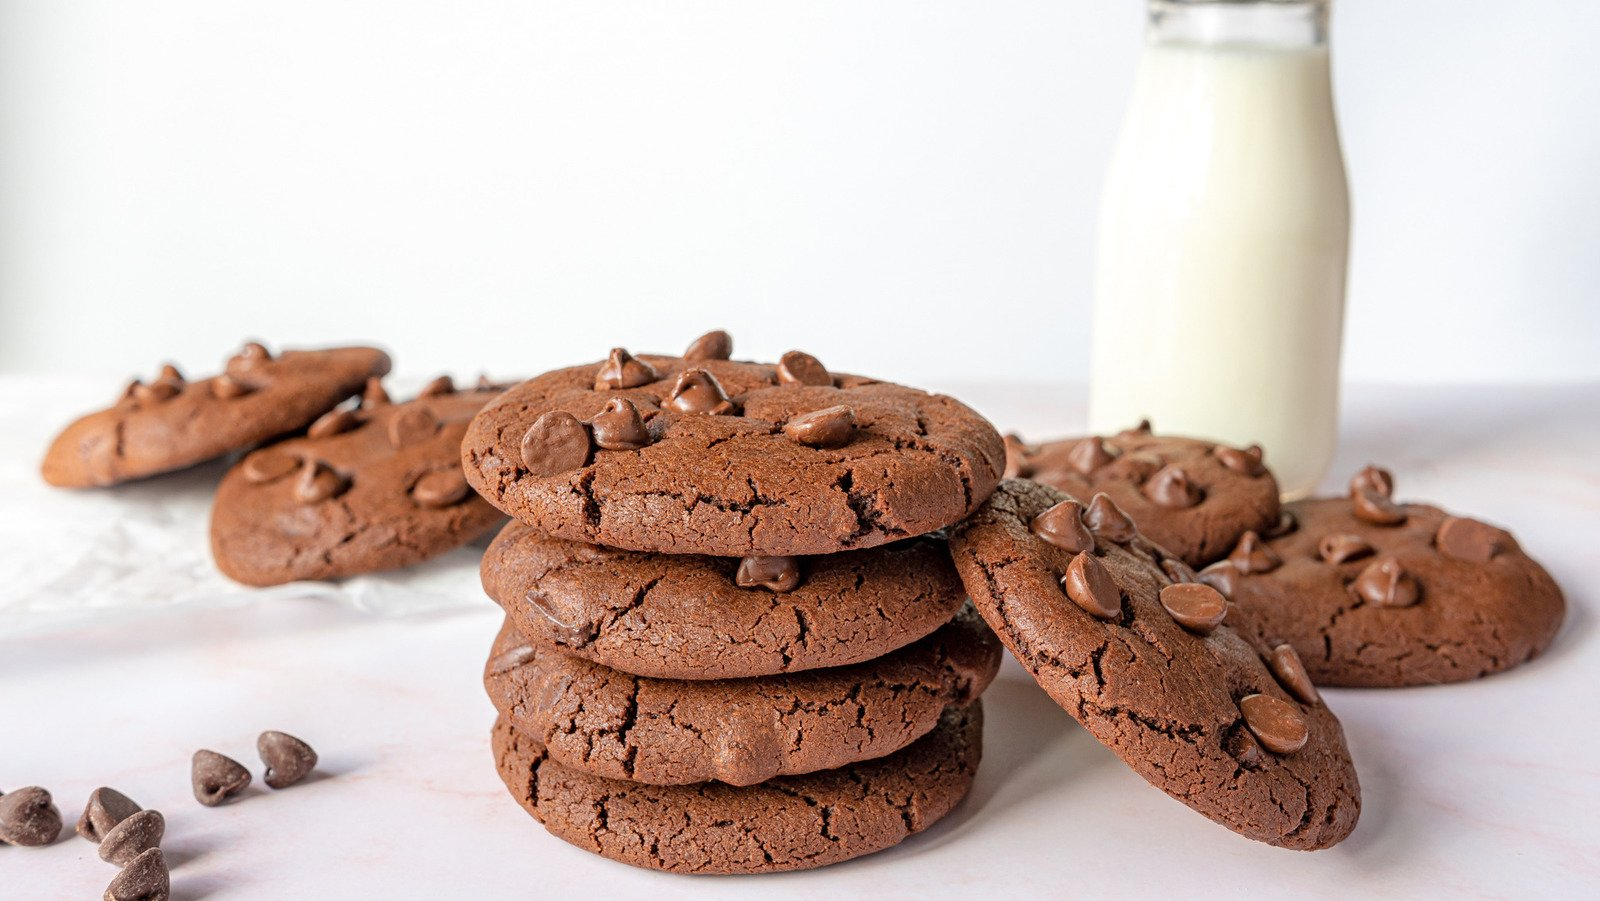 The Rich Double Chocolate Chip Cookies You're Craving